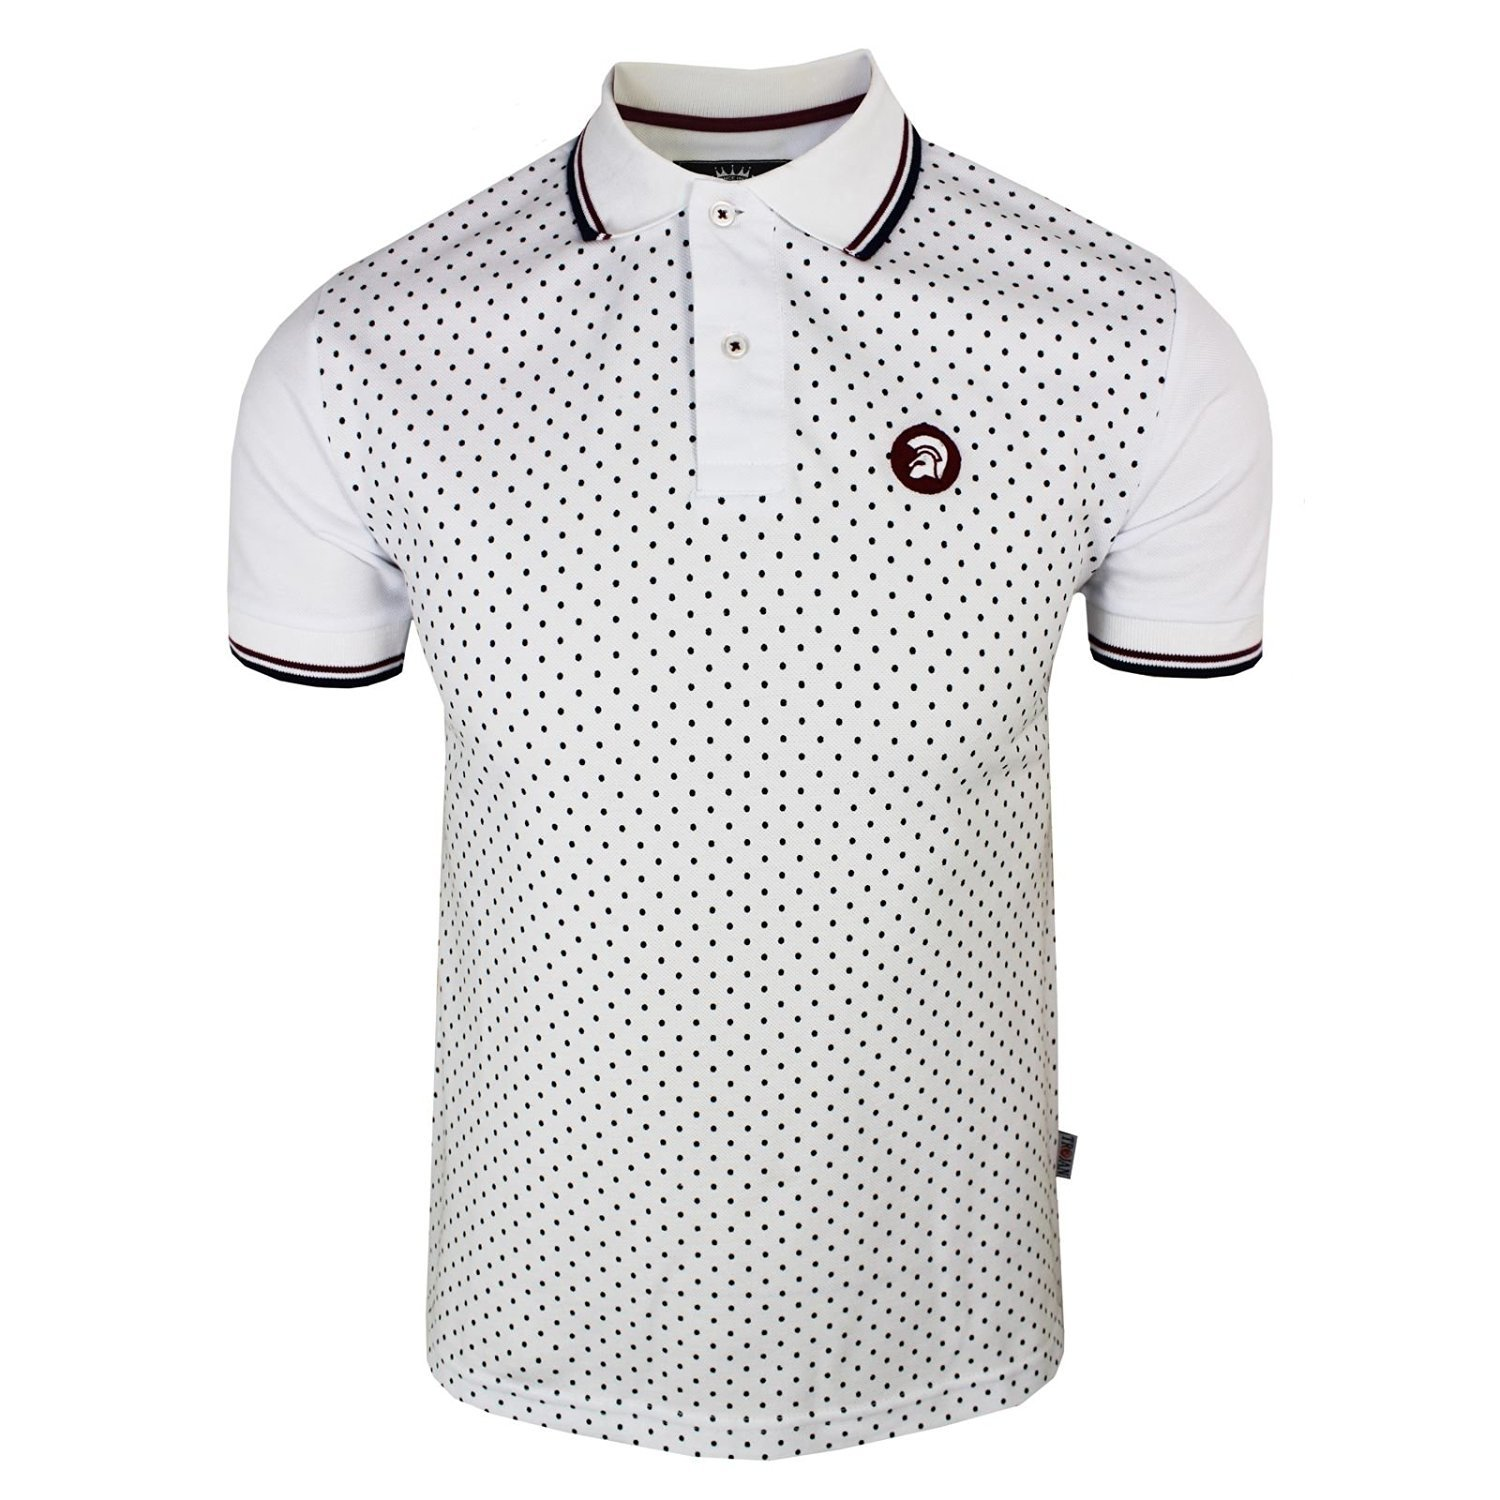 Trojan Records polo Dot frontal para hombre blanco Top blanco ...